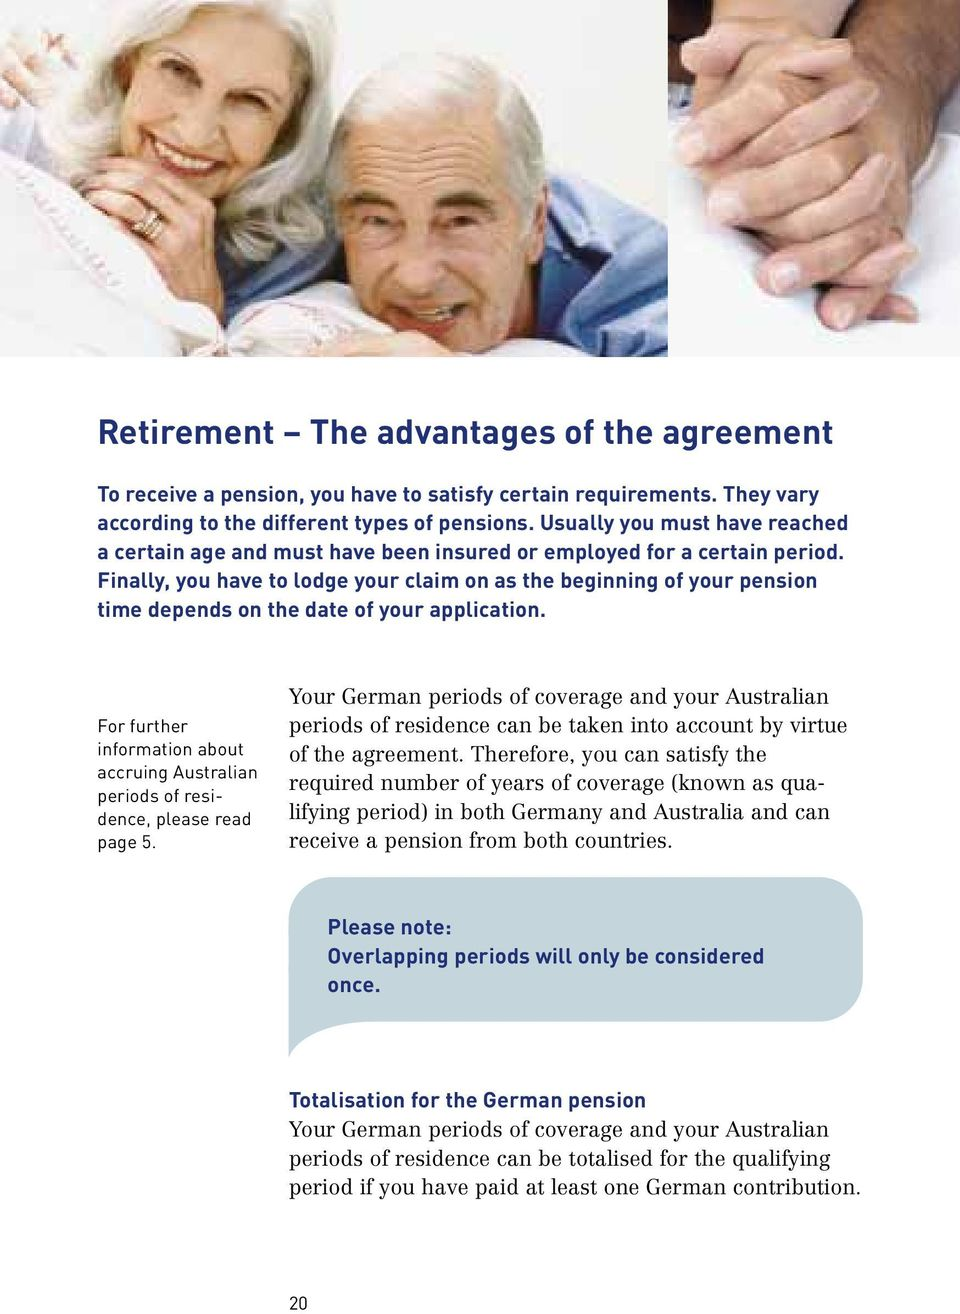 Finally, you have to lodge your claim on as the beginning of your pension time depends on the date of your application.